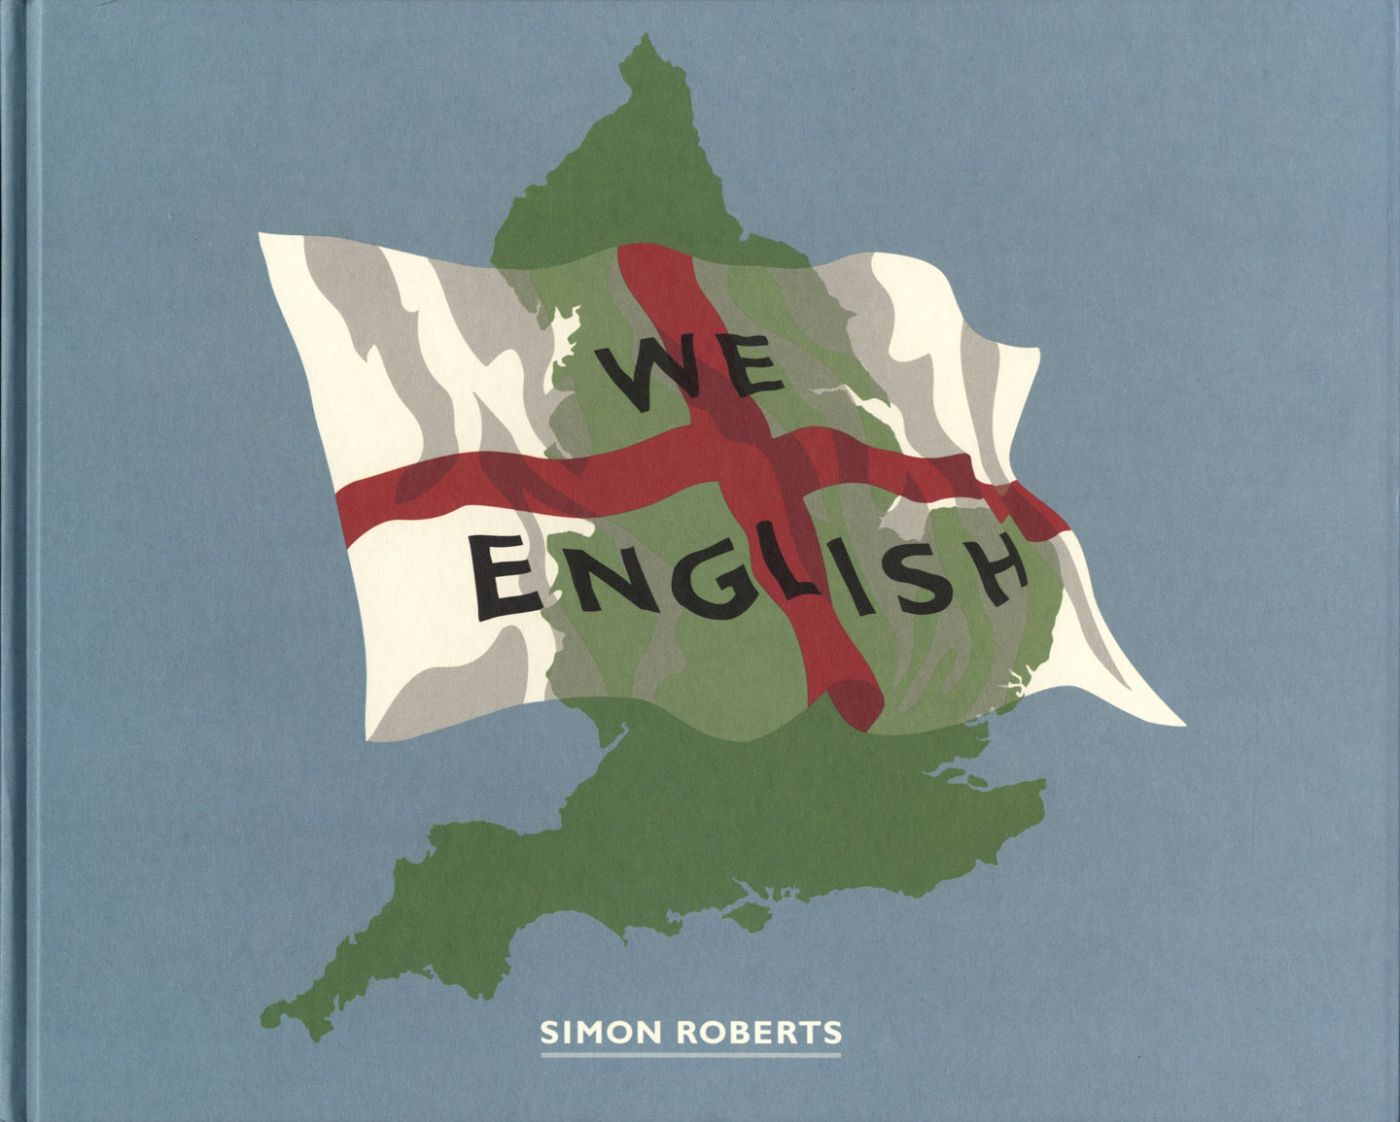 Simon Roberts: We English